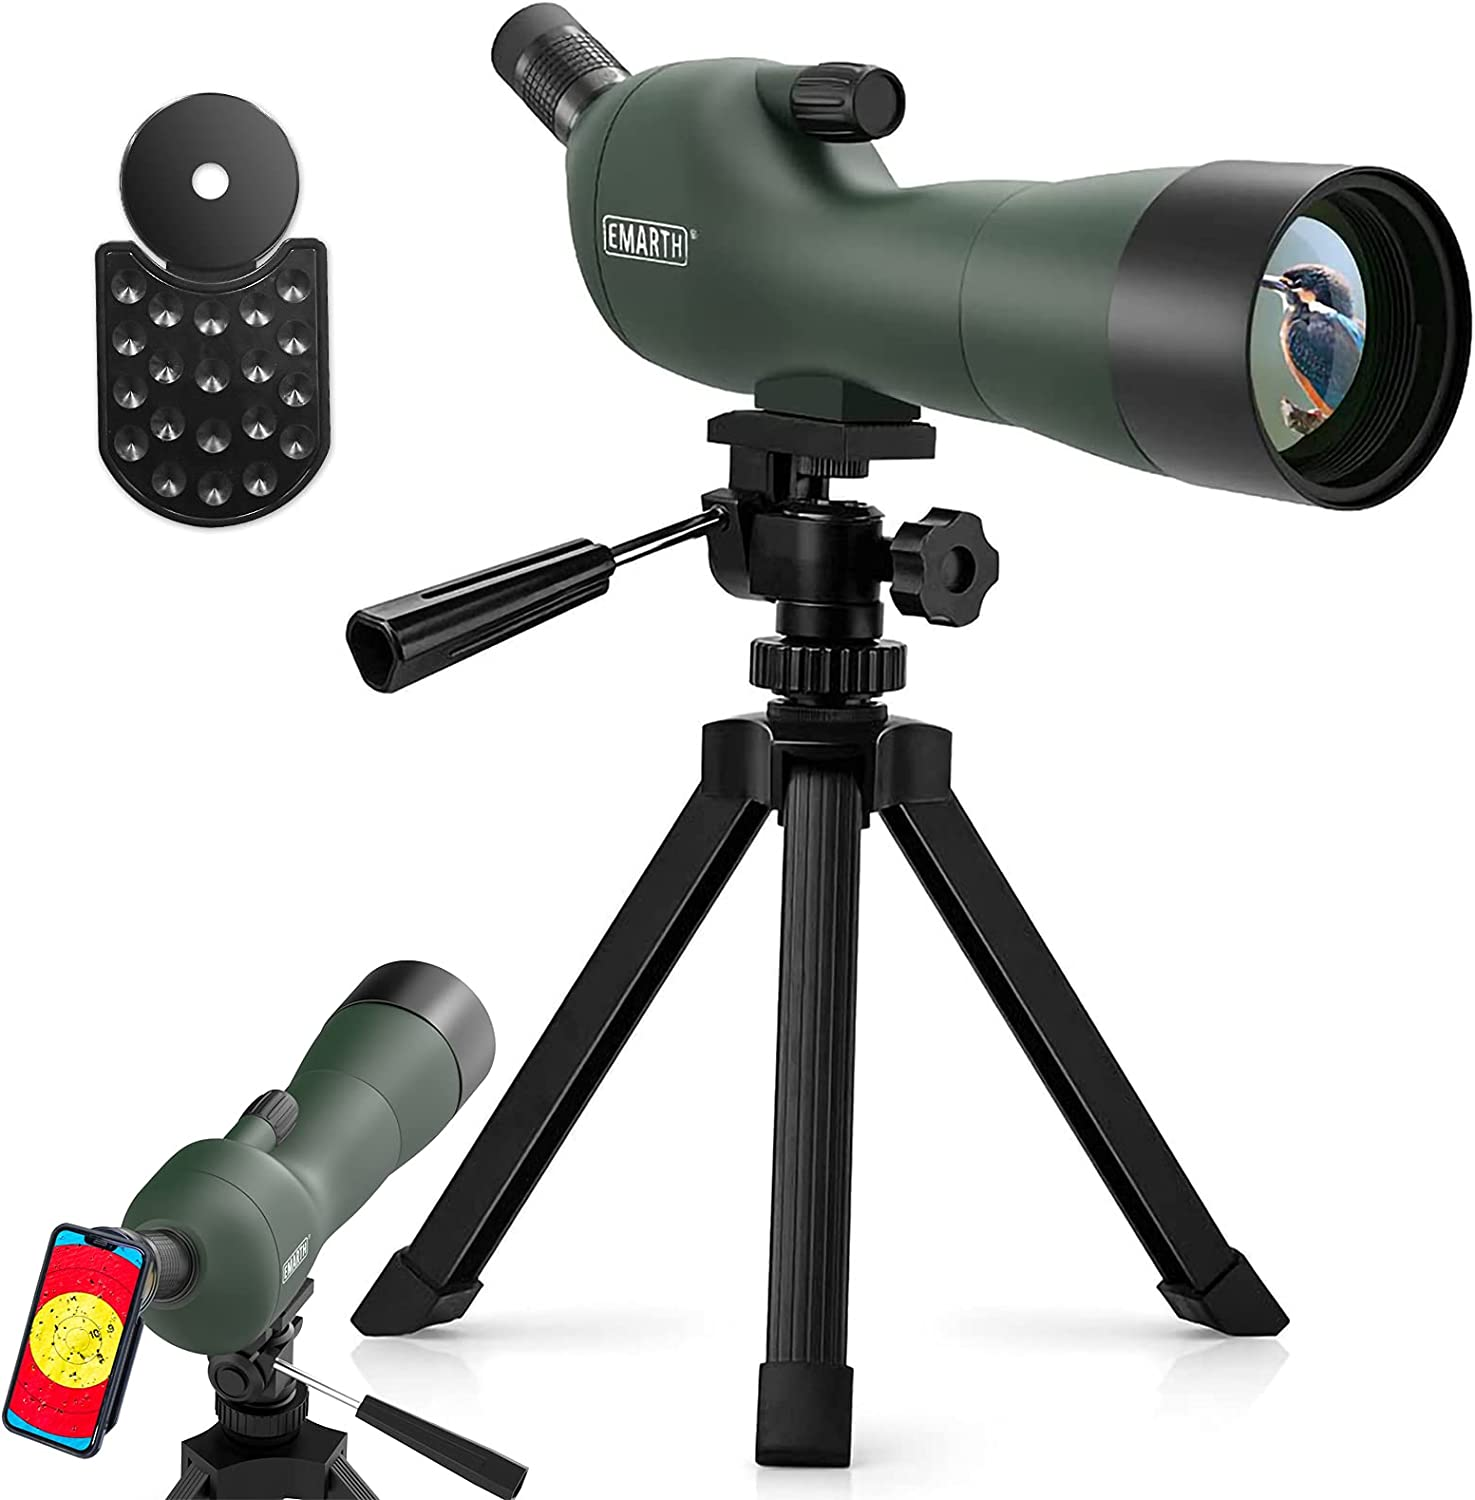 Top 9 Best Spotting Scopes For Wildlife Viewing [Buying Guide - 2021] 2